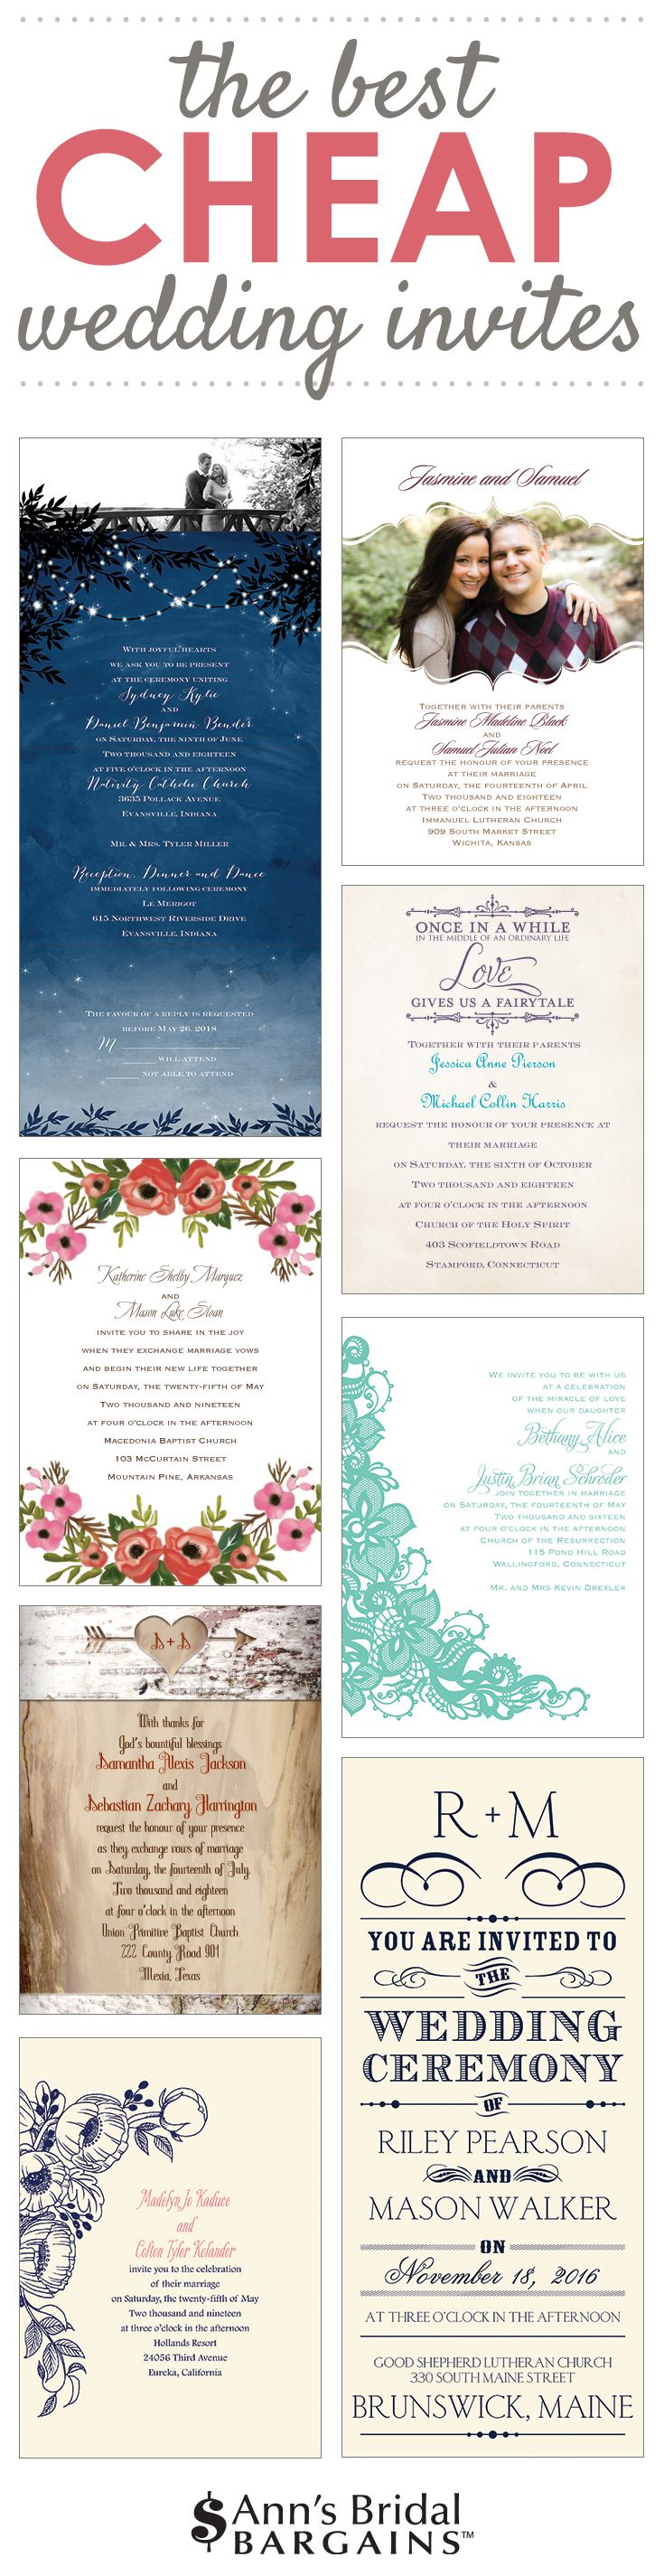 Fact: You don't have to spend hundreds of dollars to get your dream wedding invites. Quality printing. Fab design. Less cash.